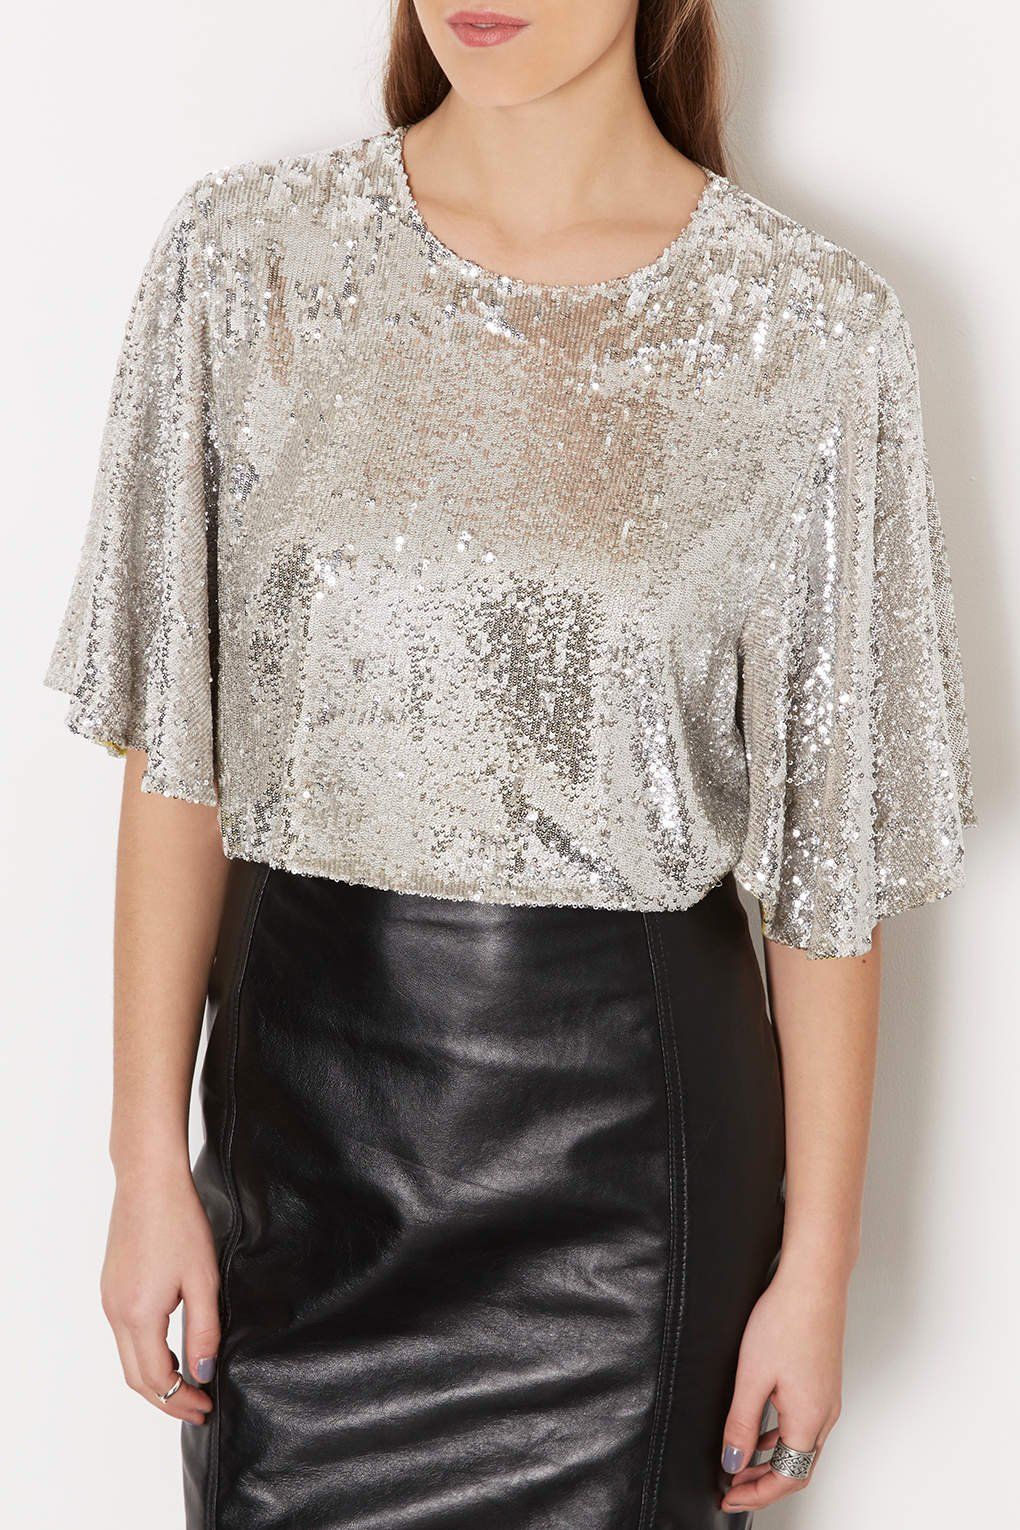 linen dries with Topshop Floaty Sleeve Sequin Crop Top Silver on Make Home Eco Friendly together with Lightweight Navy Blazers Spring 2016 likewise Flax Linum Usitatissimum besides Microfiber Underwear For Men in addition Marchanson blogspot.